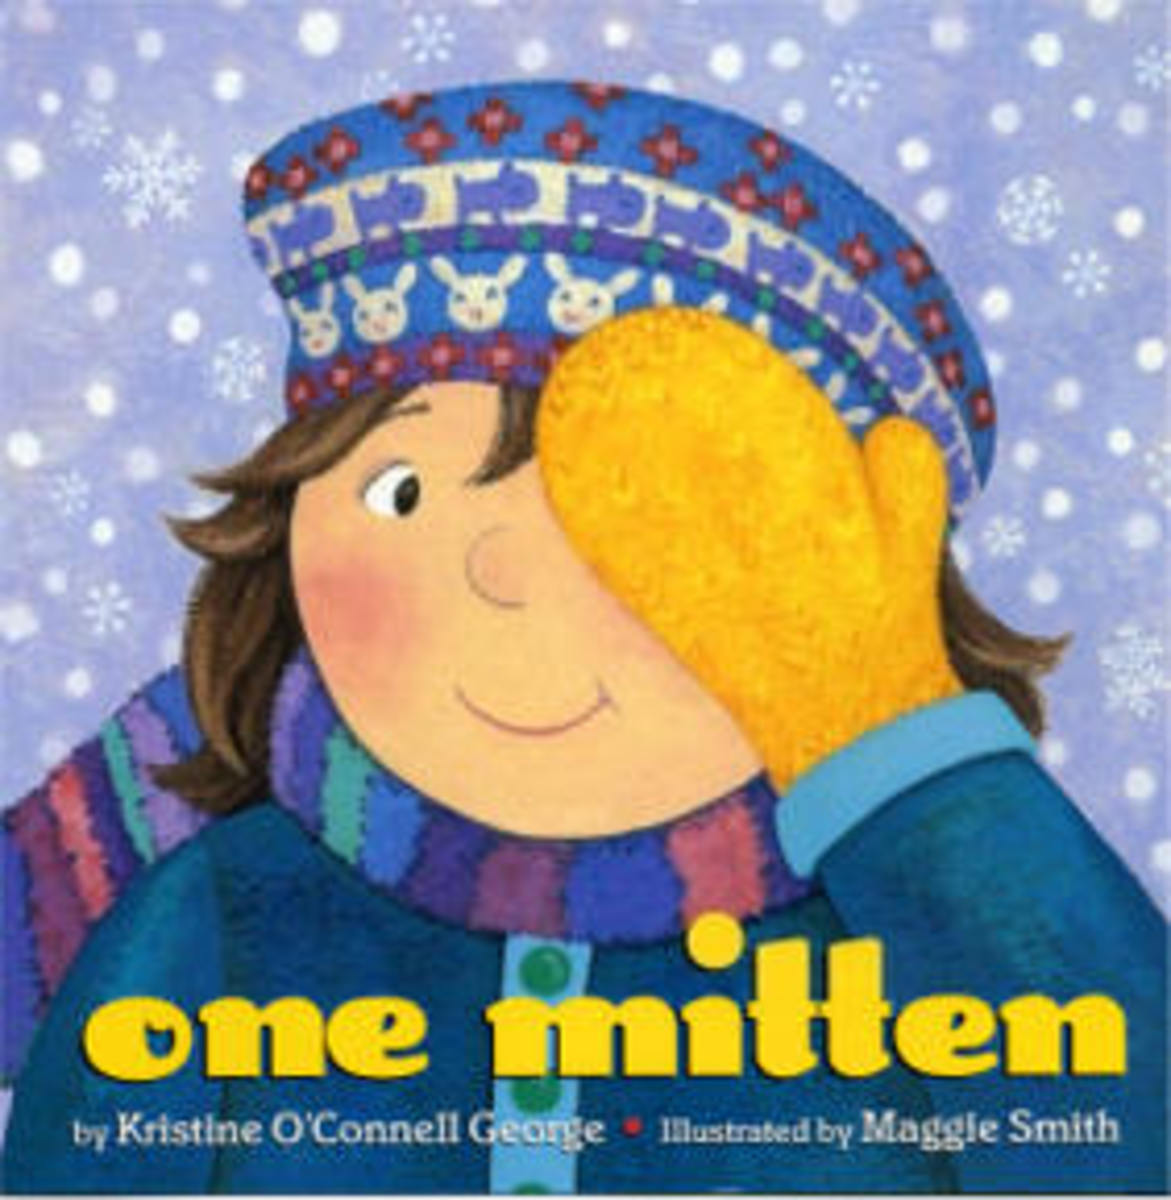 One Mitten is a rhyming book that describes the imaginative ways a child can play using a simple yellow mitten.